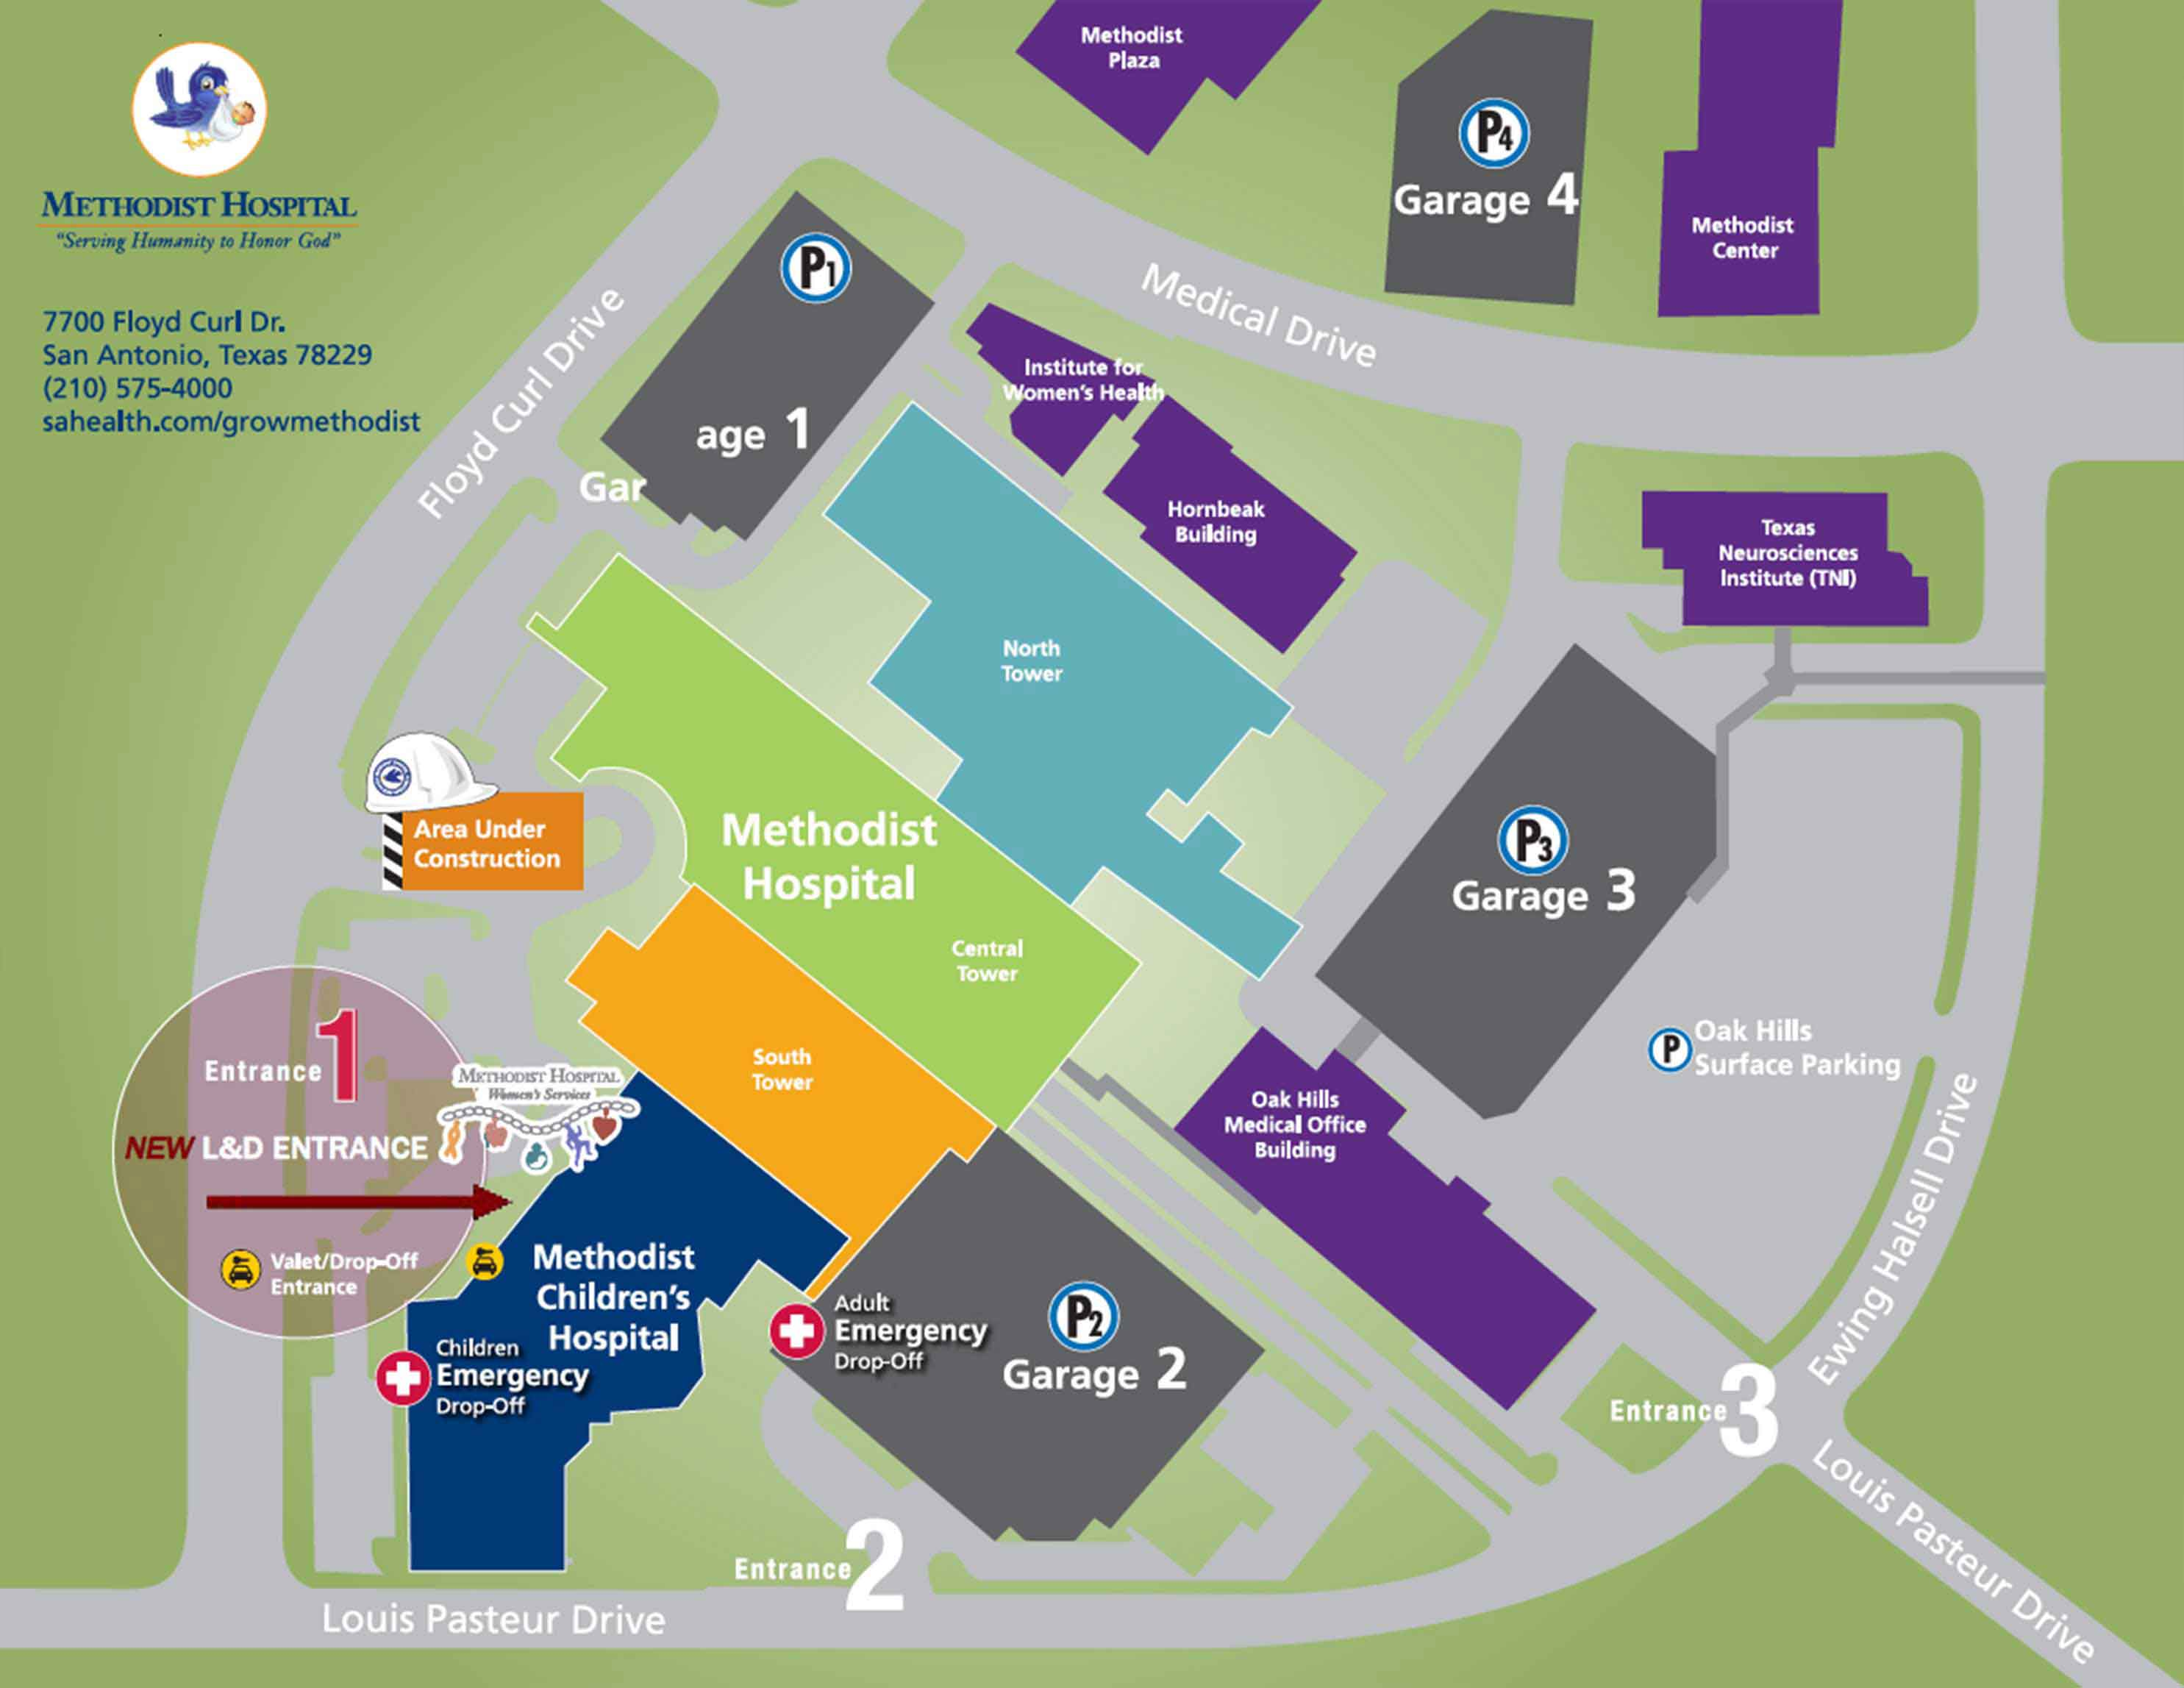 campus-map-and-parking dot | Methodist Healthcare